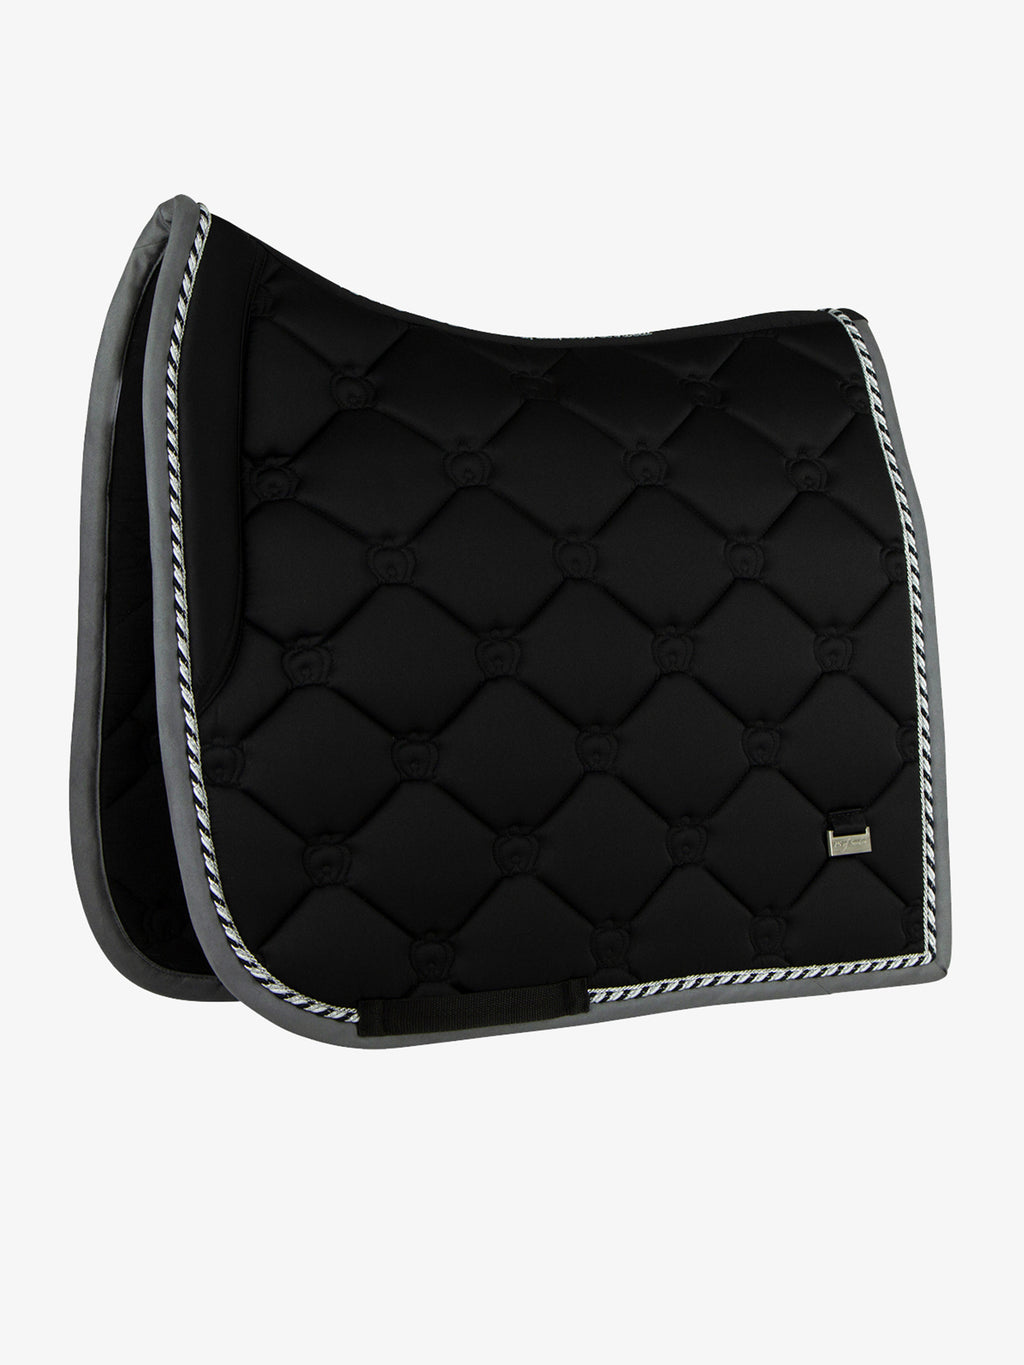 Ps of Sweden Dressage Saddle Pad Black - The Dressage Store